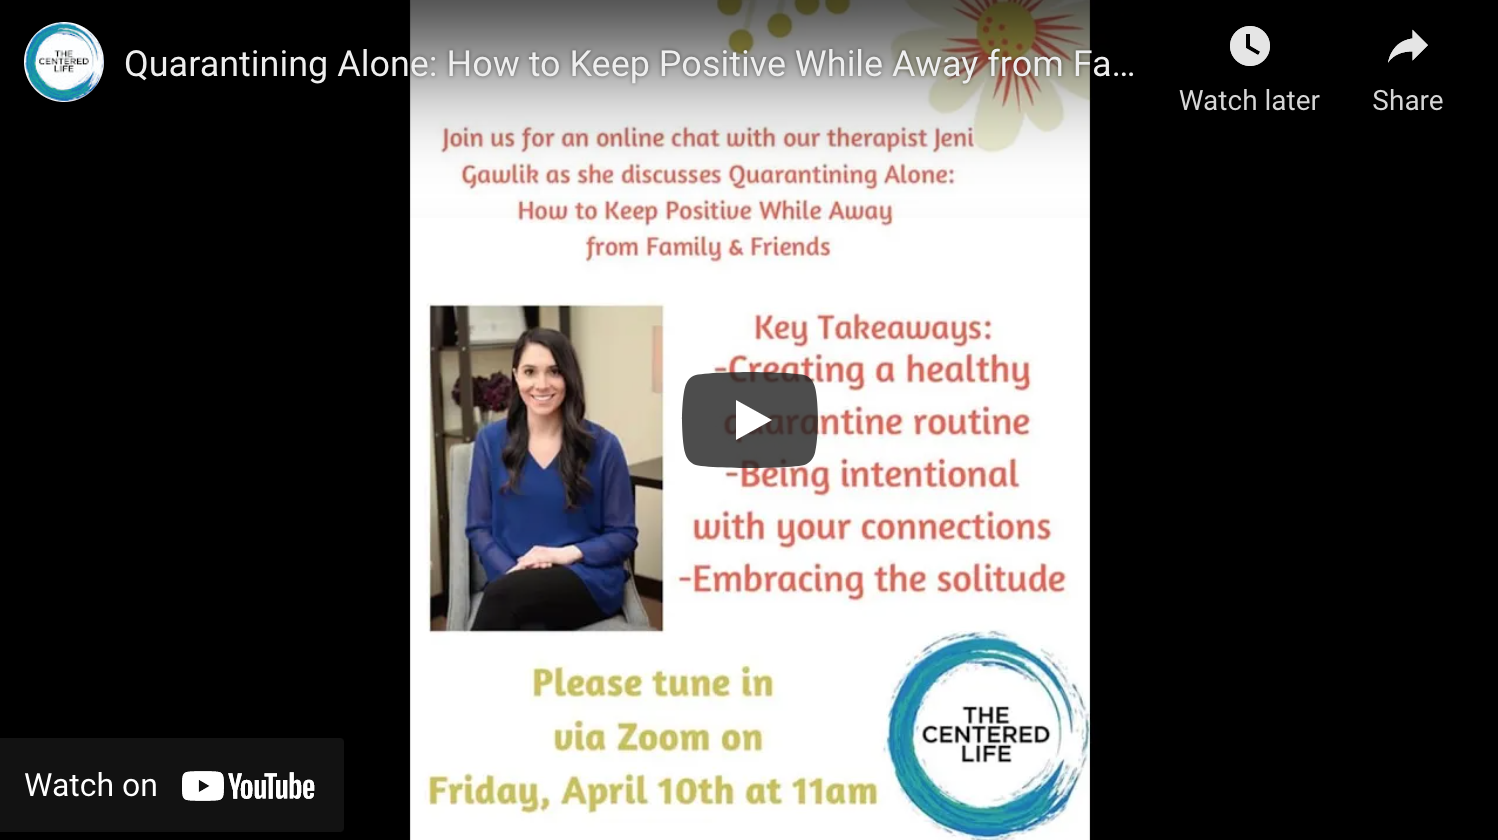 Quarantining Alone: How to Keep Positive While Away from Family and Friends